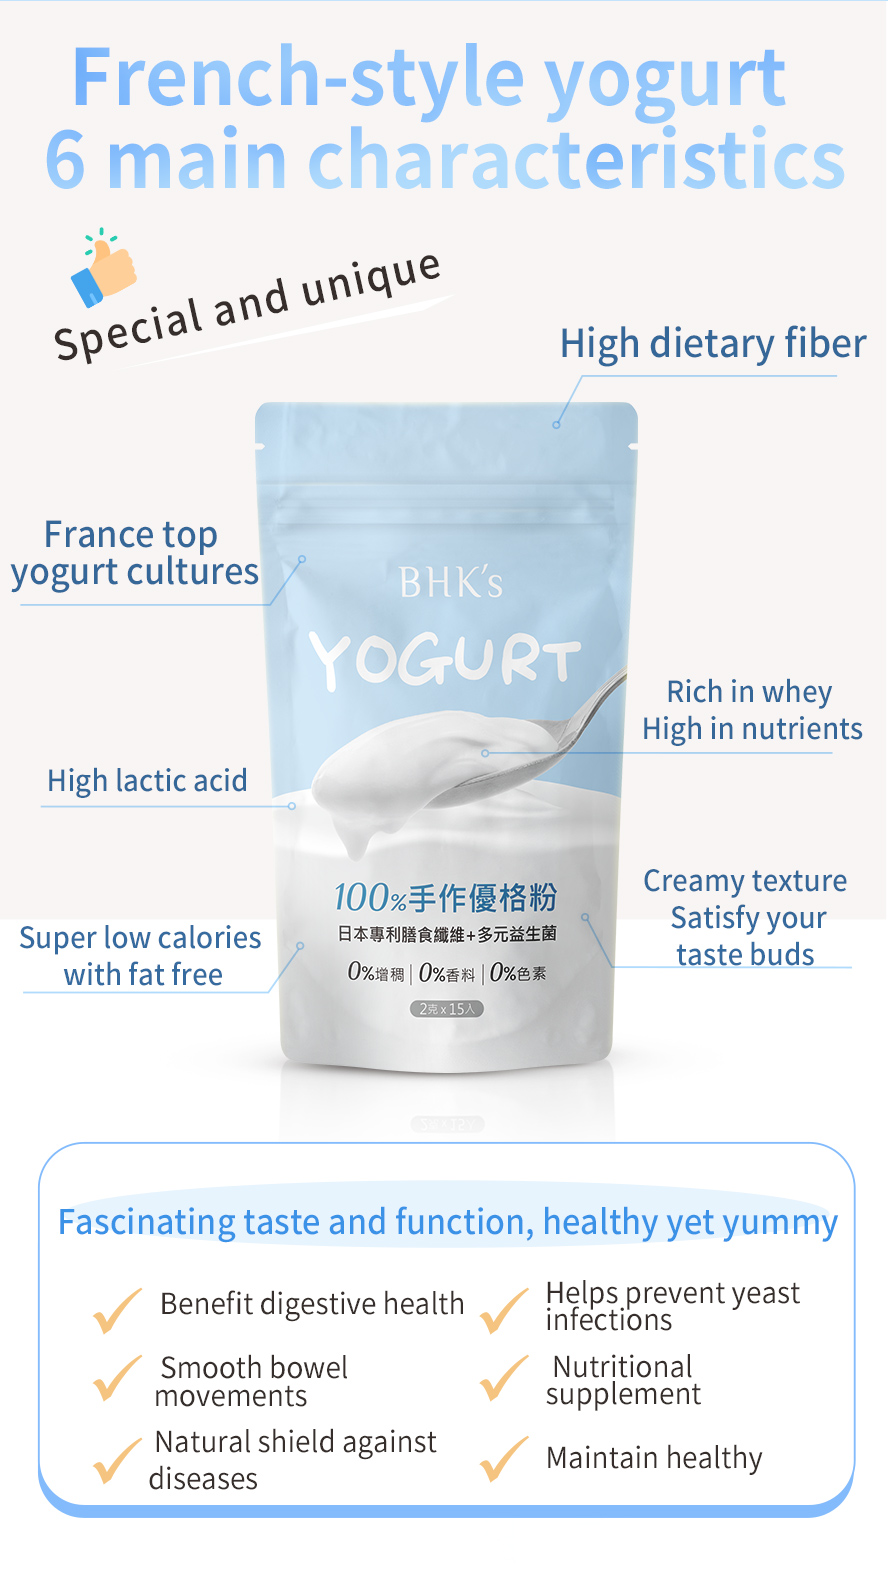 BHK's Yogurt uses French patented yogurt that can increases the amount of good bacteria in the GI tract.